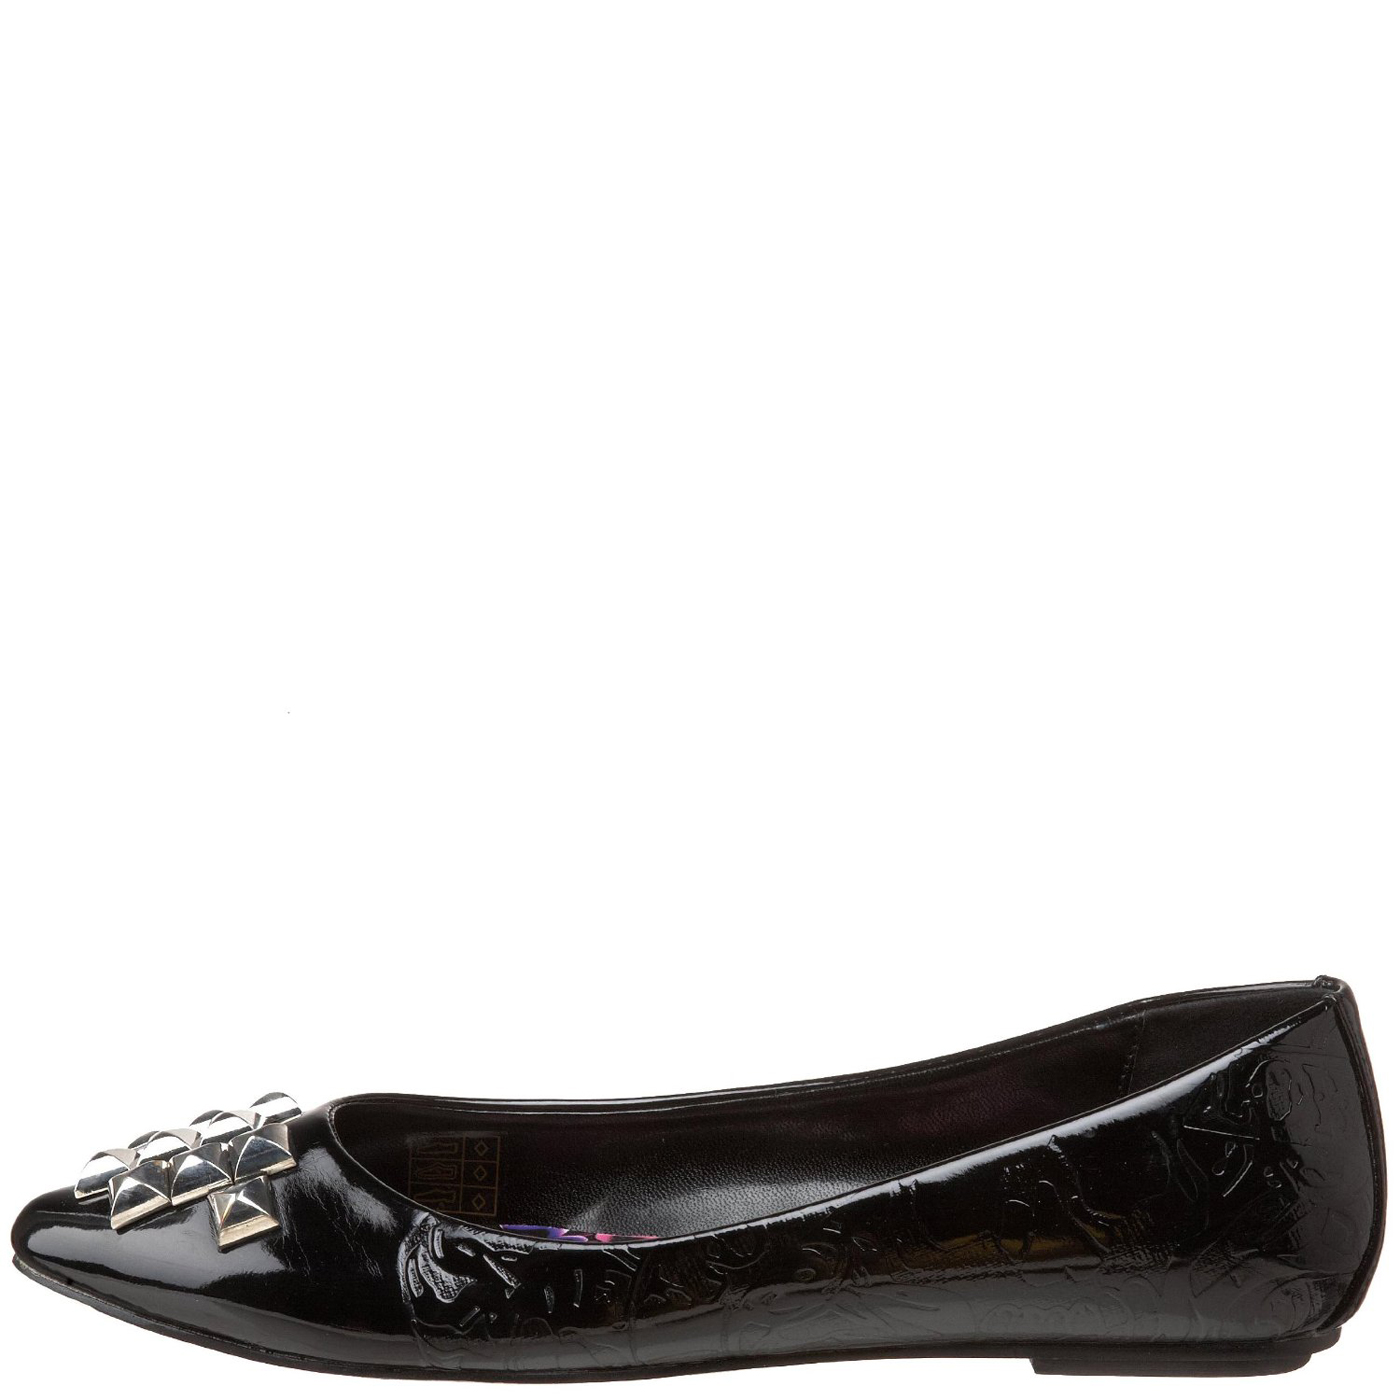 Ed Hardy Caracas Flat Shoe for Women - Black